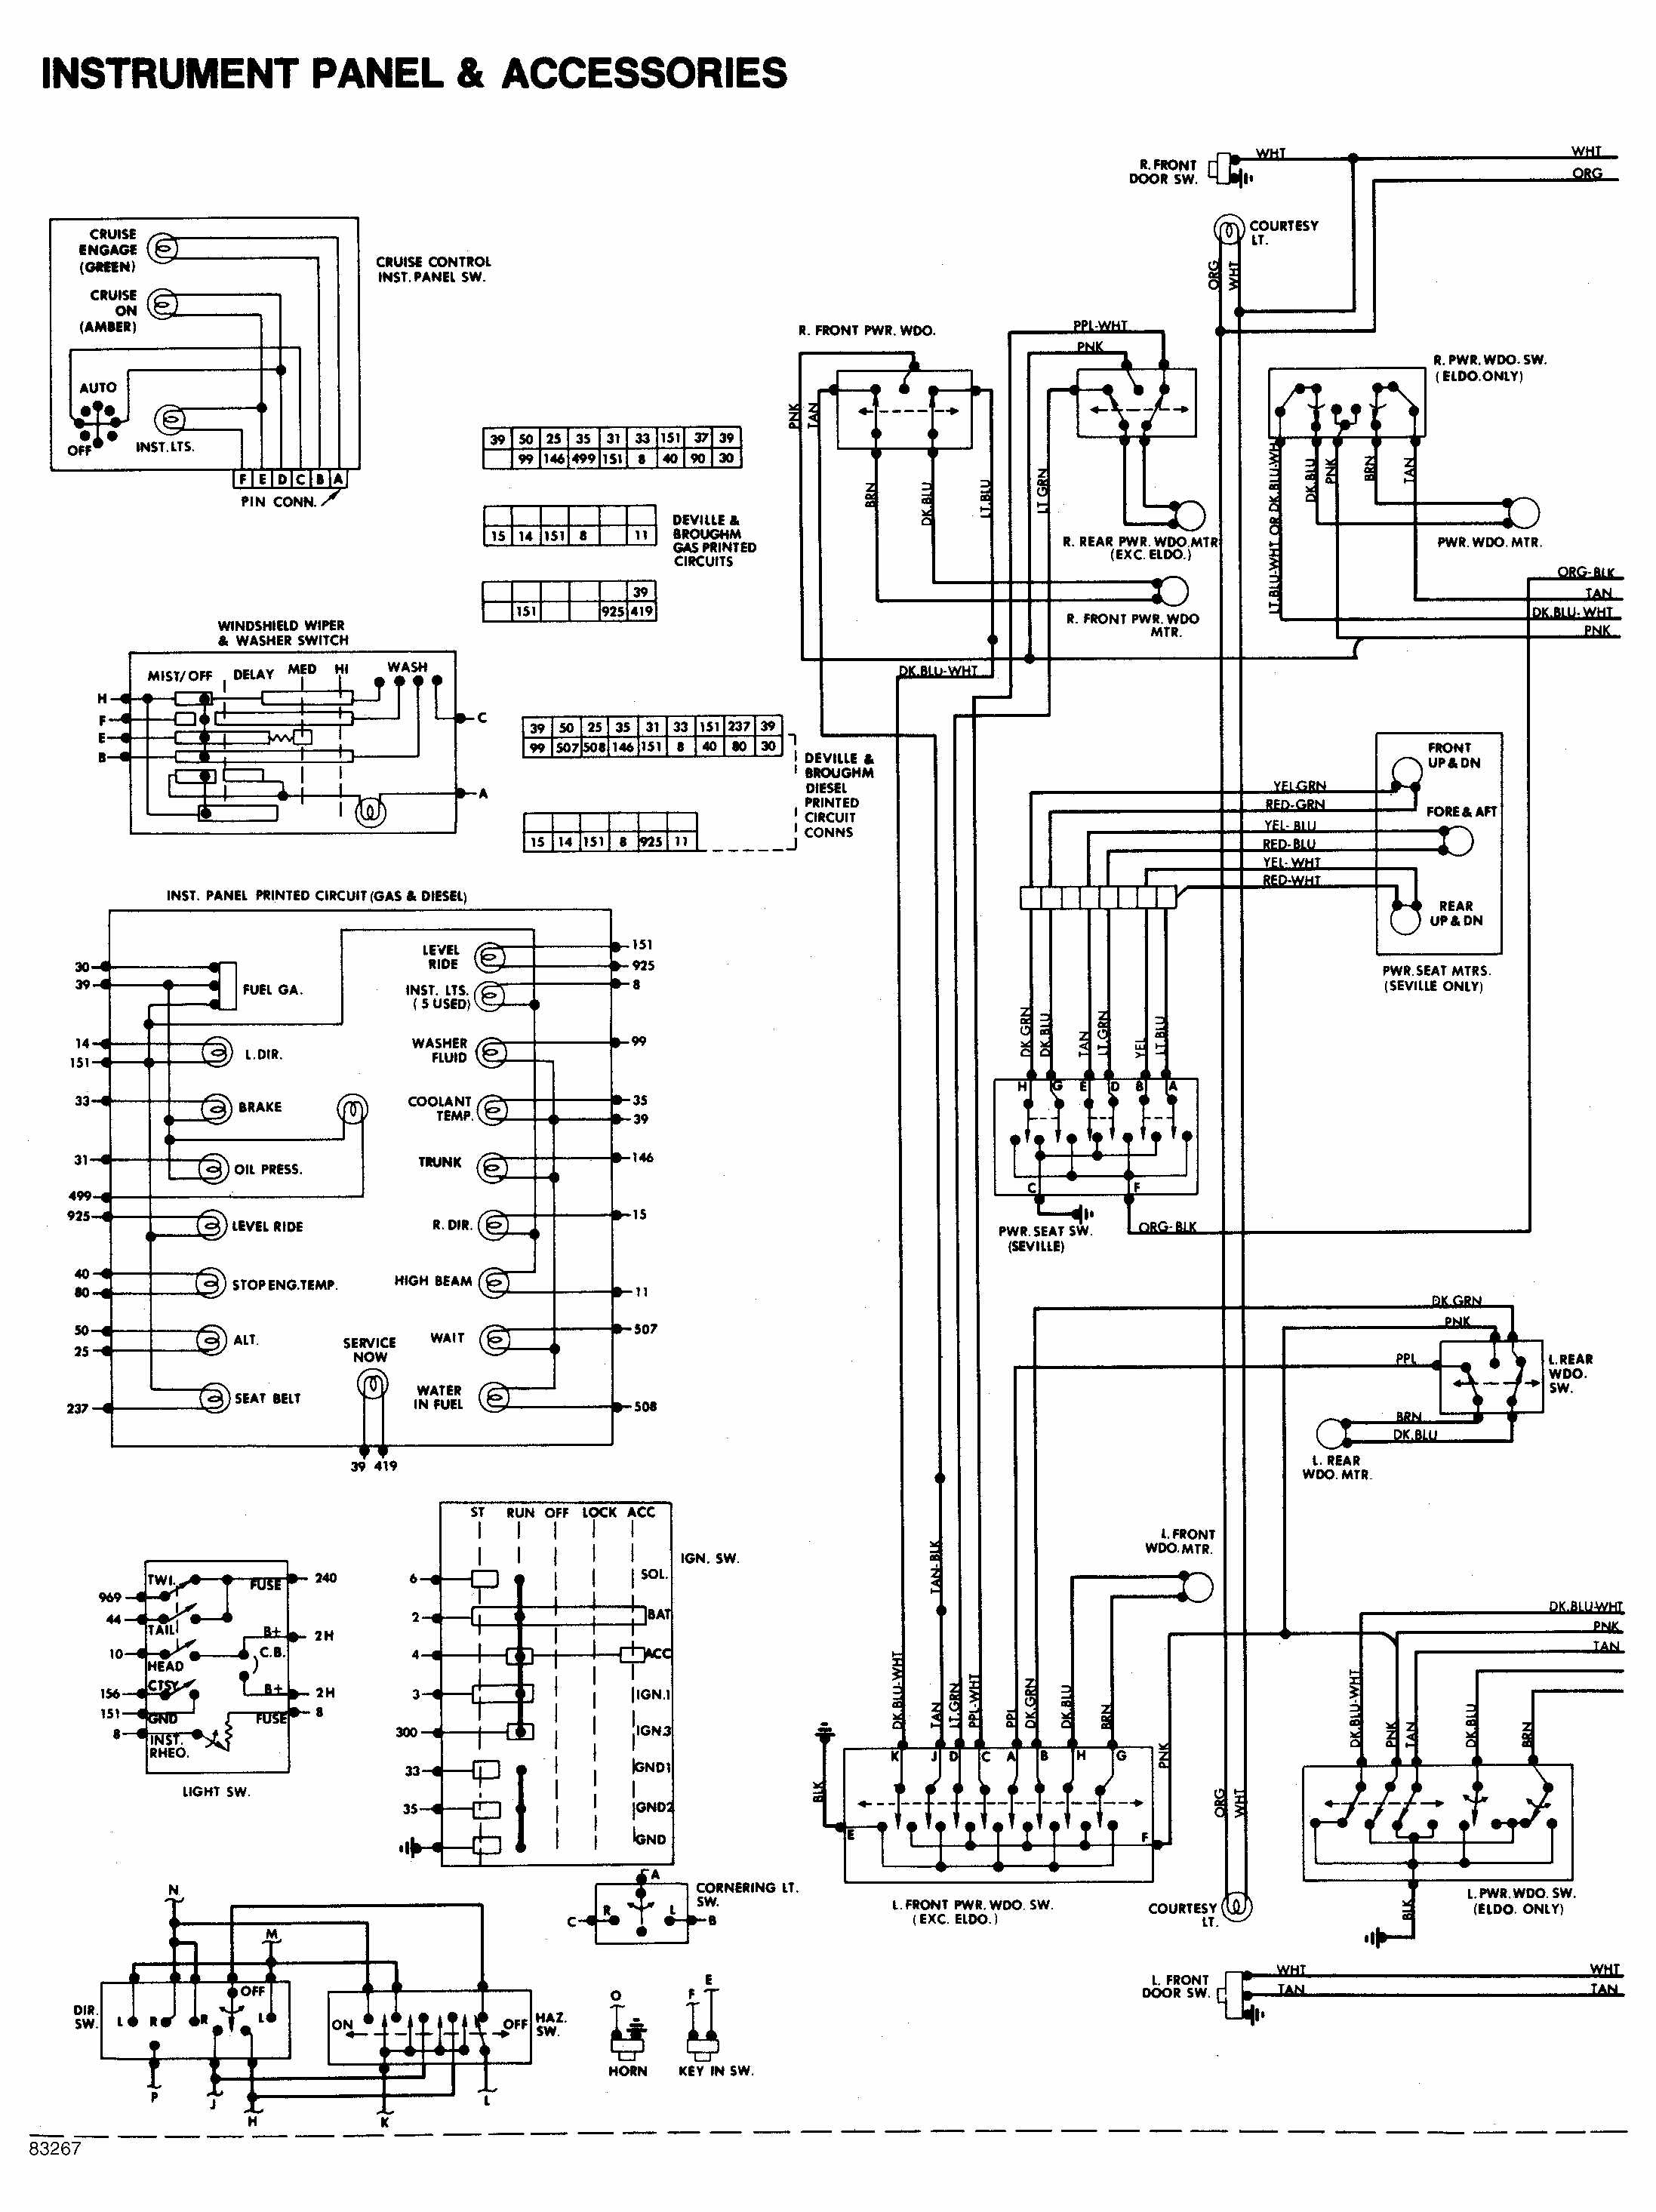 68 Camaro Wiring Schematic Library 1965 Mustang Horn Diagram Chevy Diagrams 1968